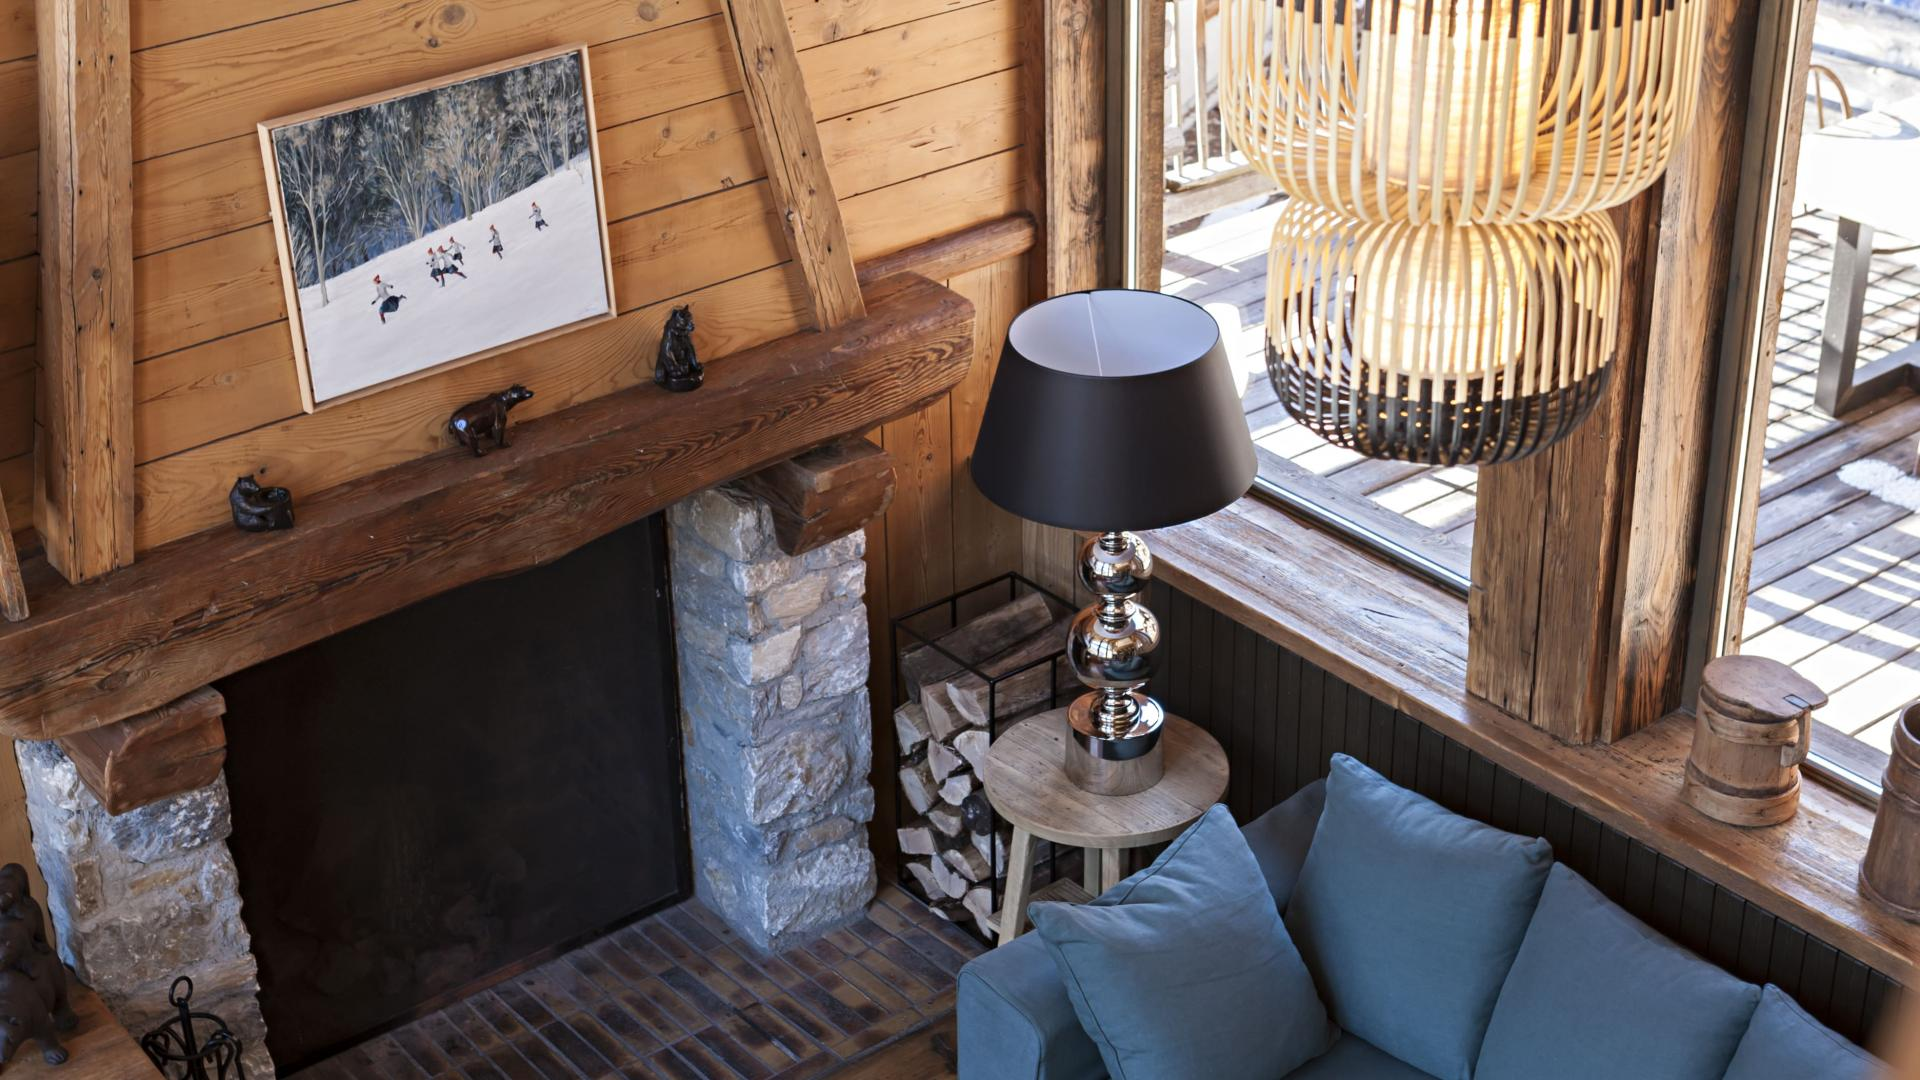 Chalet Alice 15 - Location chalets Covarel - Val d'Isère Alpes - France - Salon